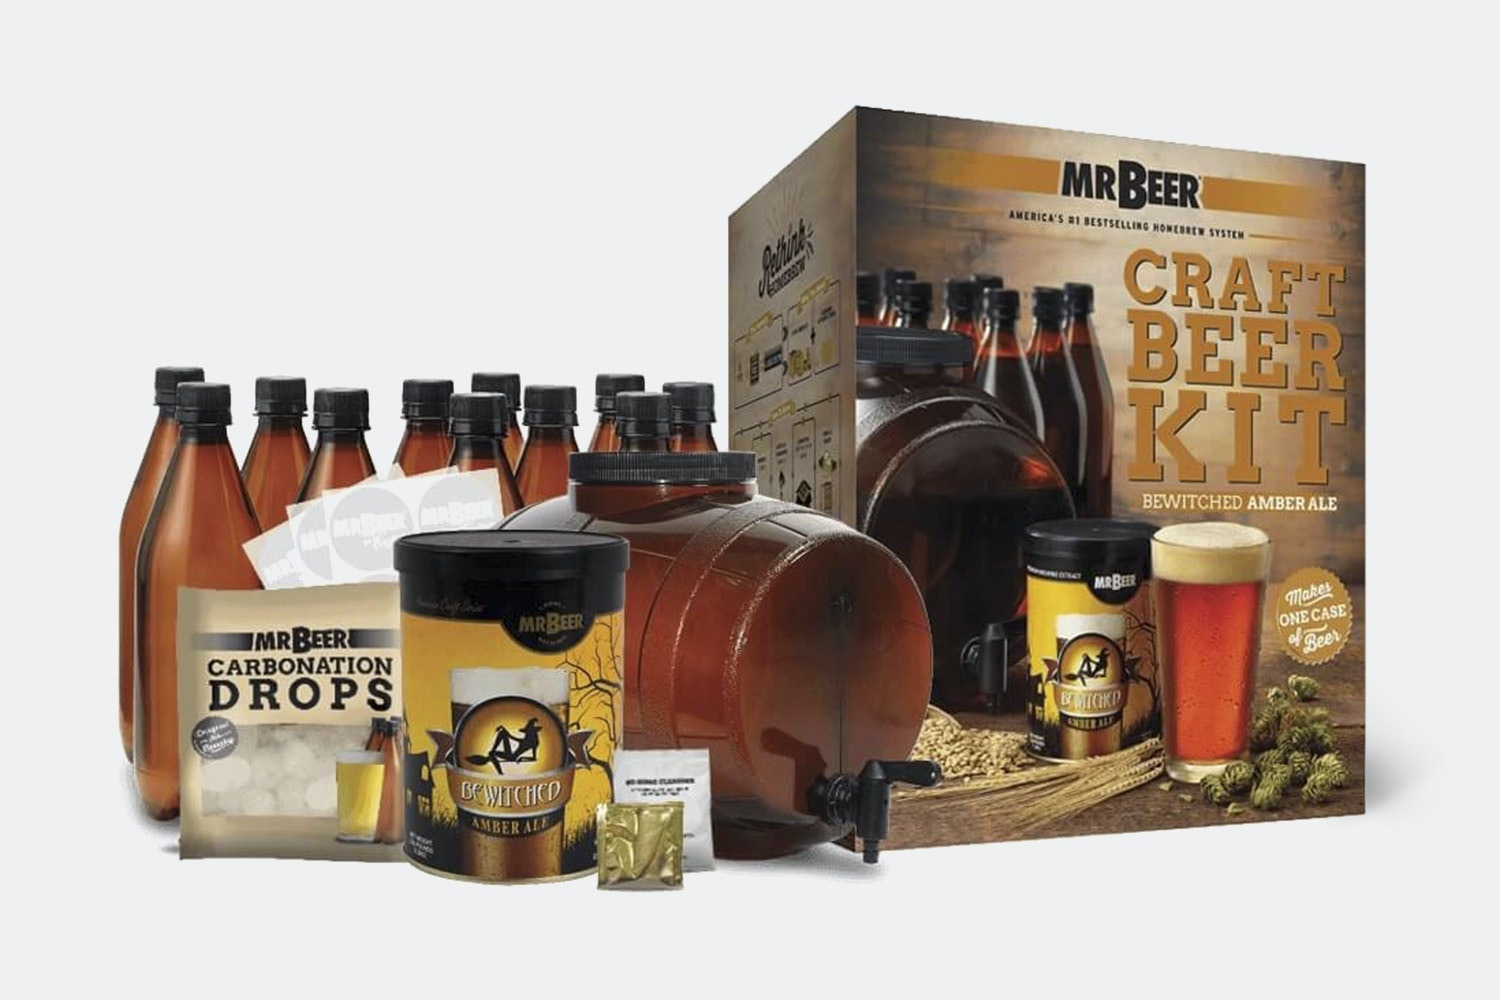 Bewitched Amber Ale Kit